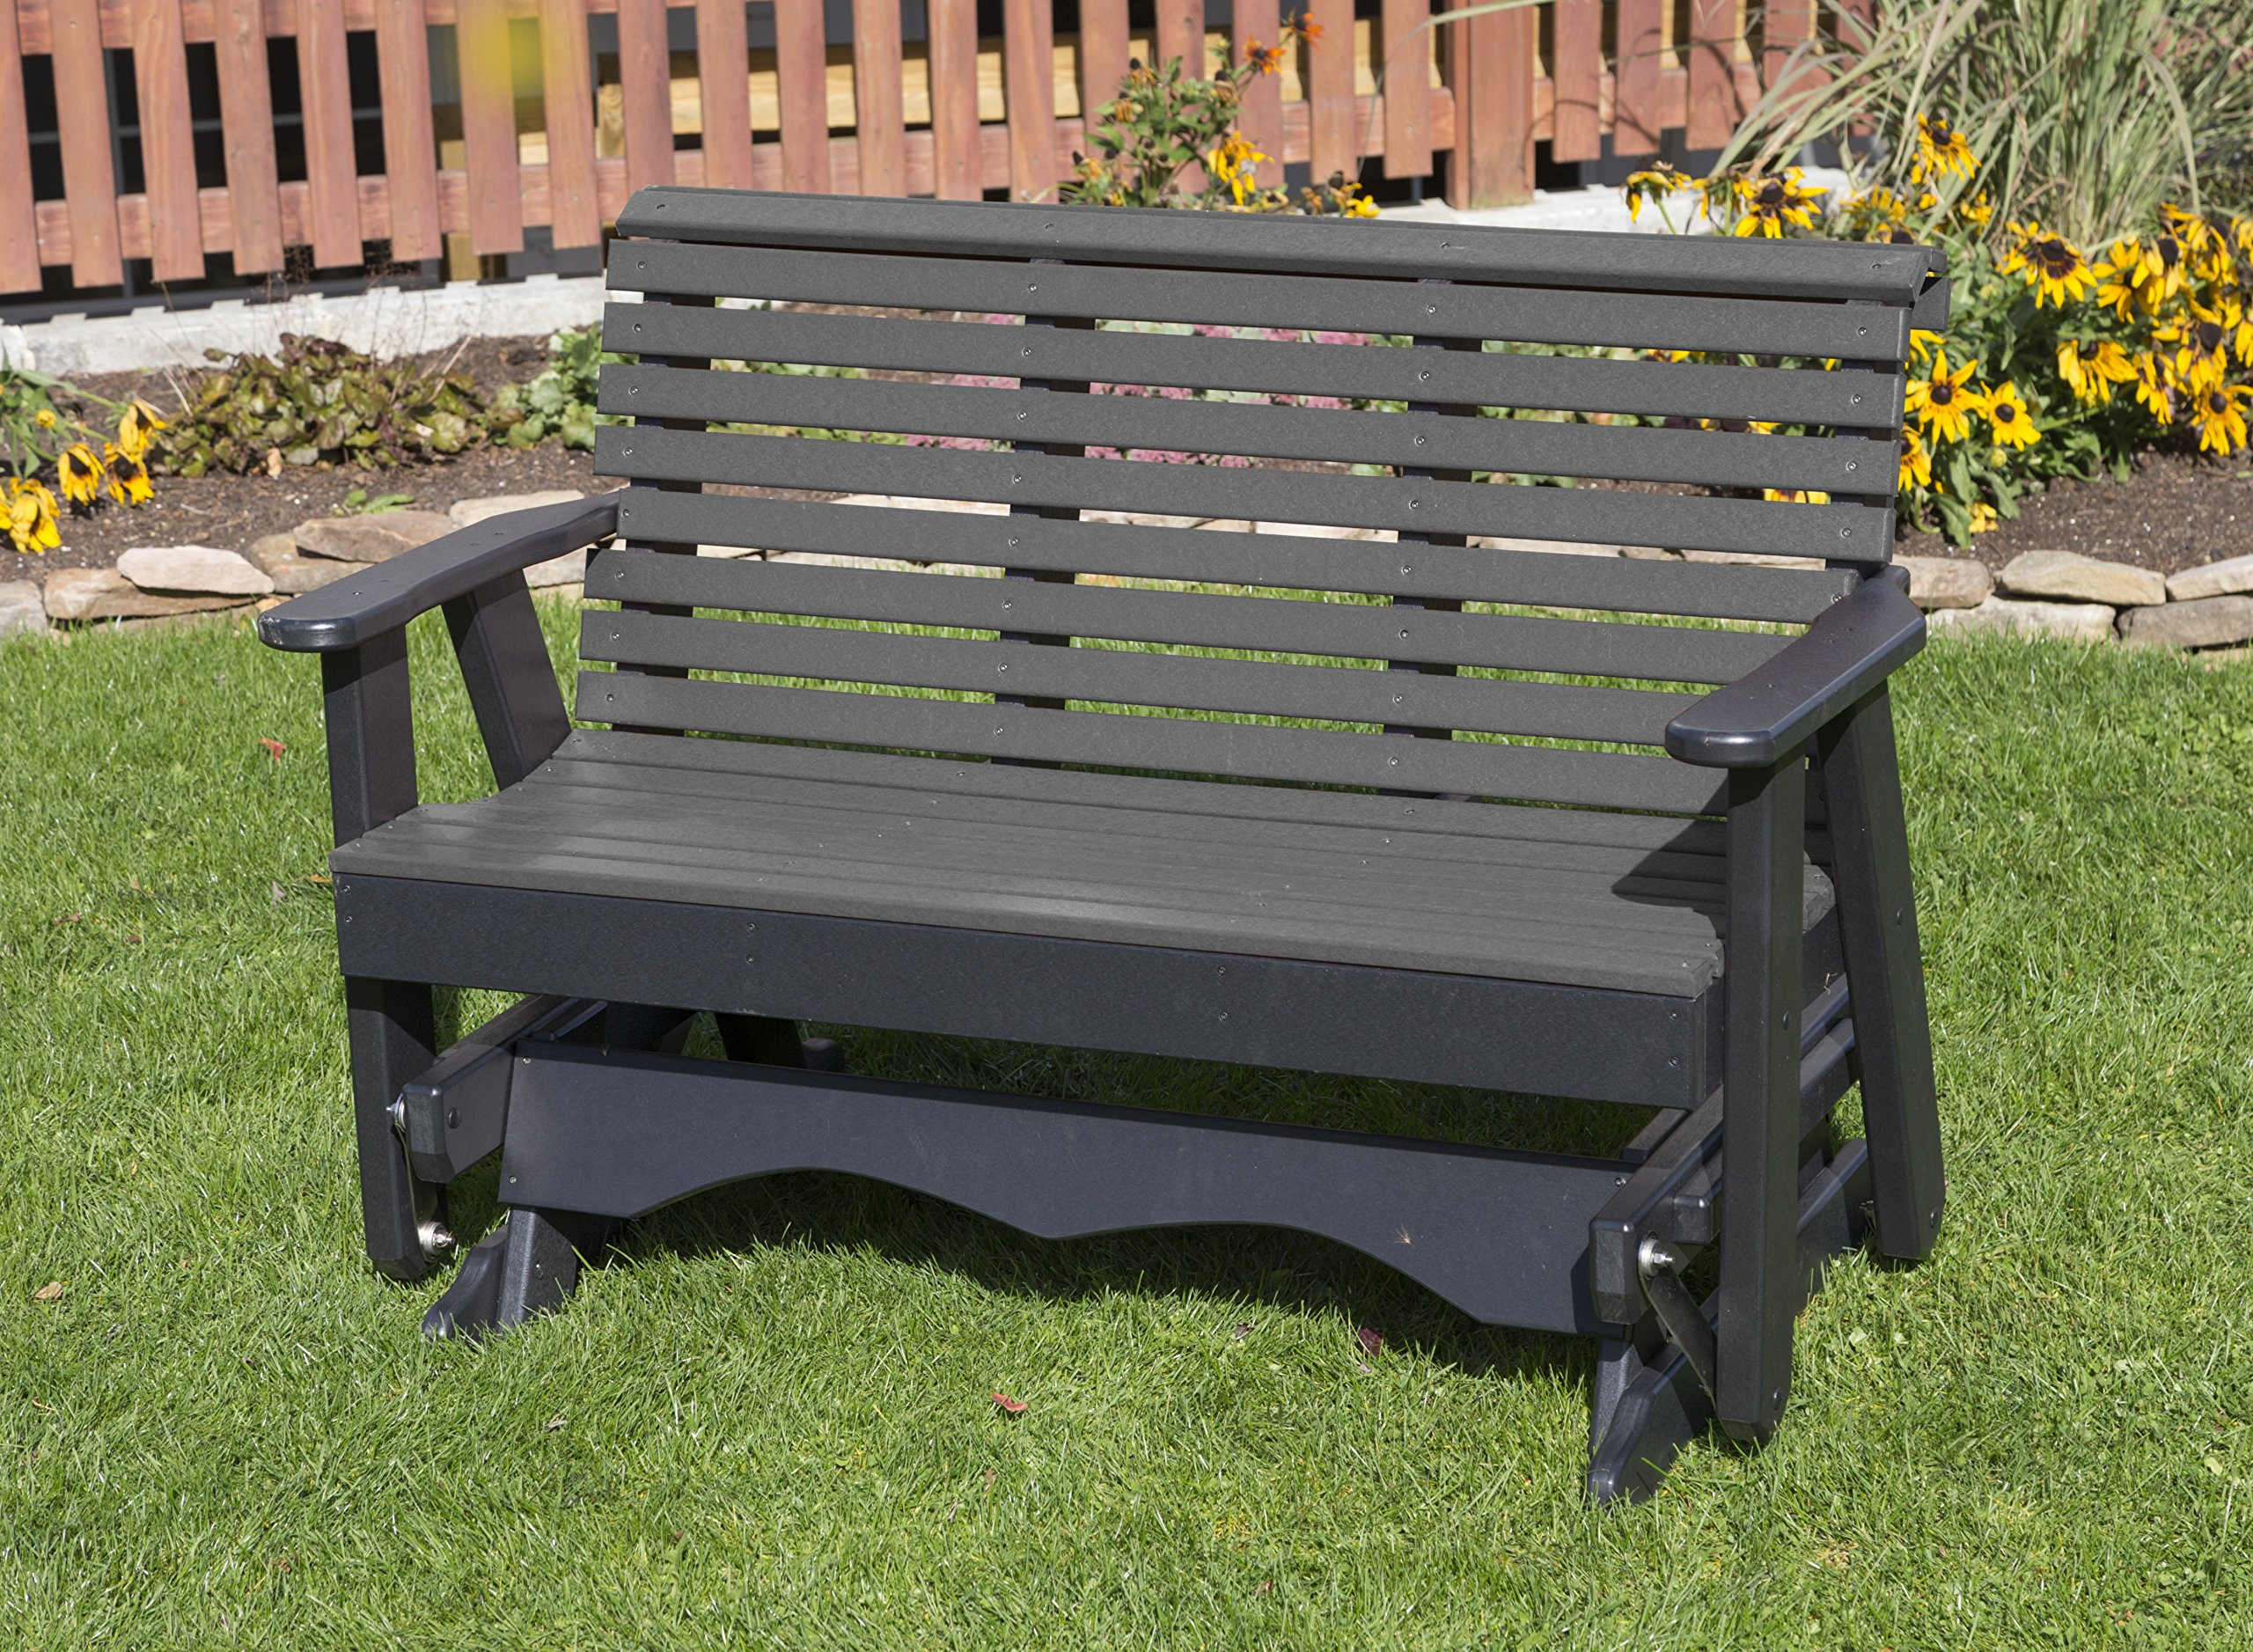 Ecommersify Inc 5FT-Dark Gray-Poly Lumber ROLL Back Porch Glider Heavy Duty Everlasting PolyTuf HDPE - Made in USA - Amish Crafted by Ecommersify Inc